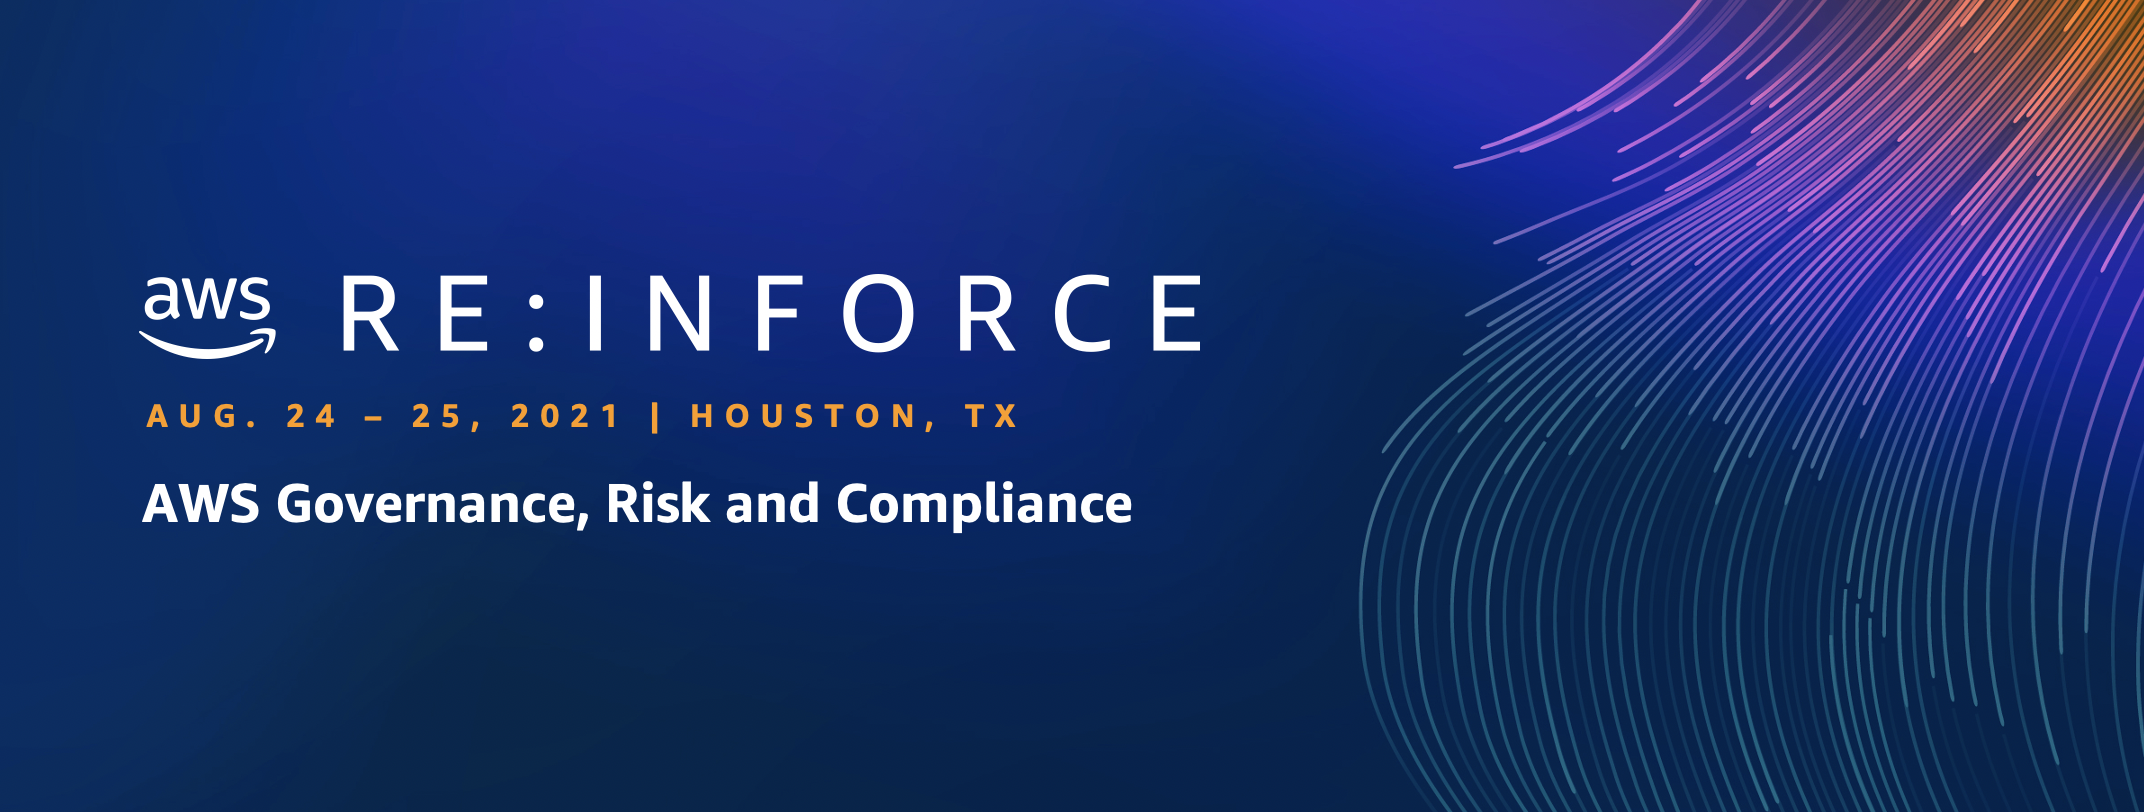 Governance, Risk and Compliance track at AWS re:Inforce 2021